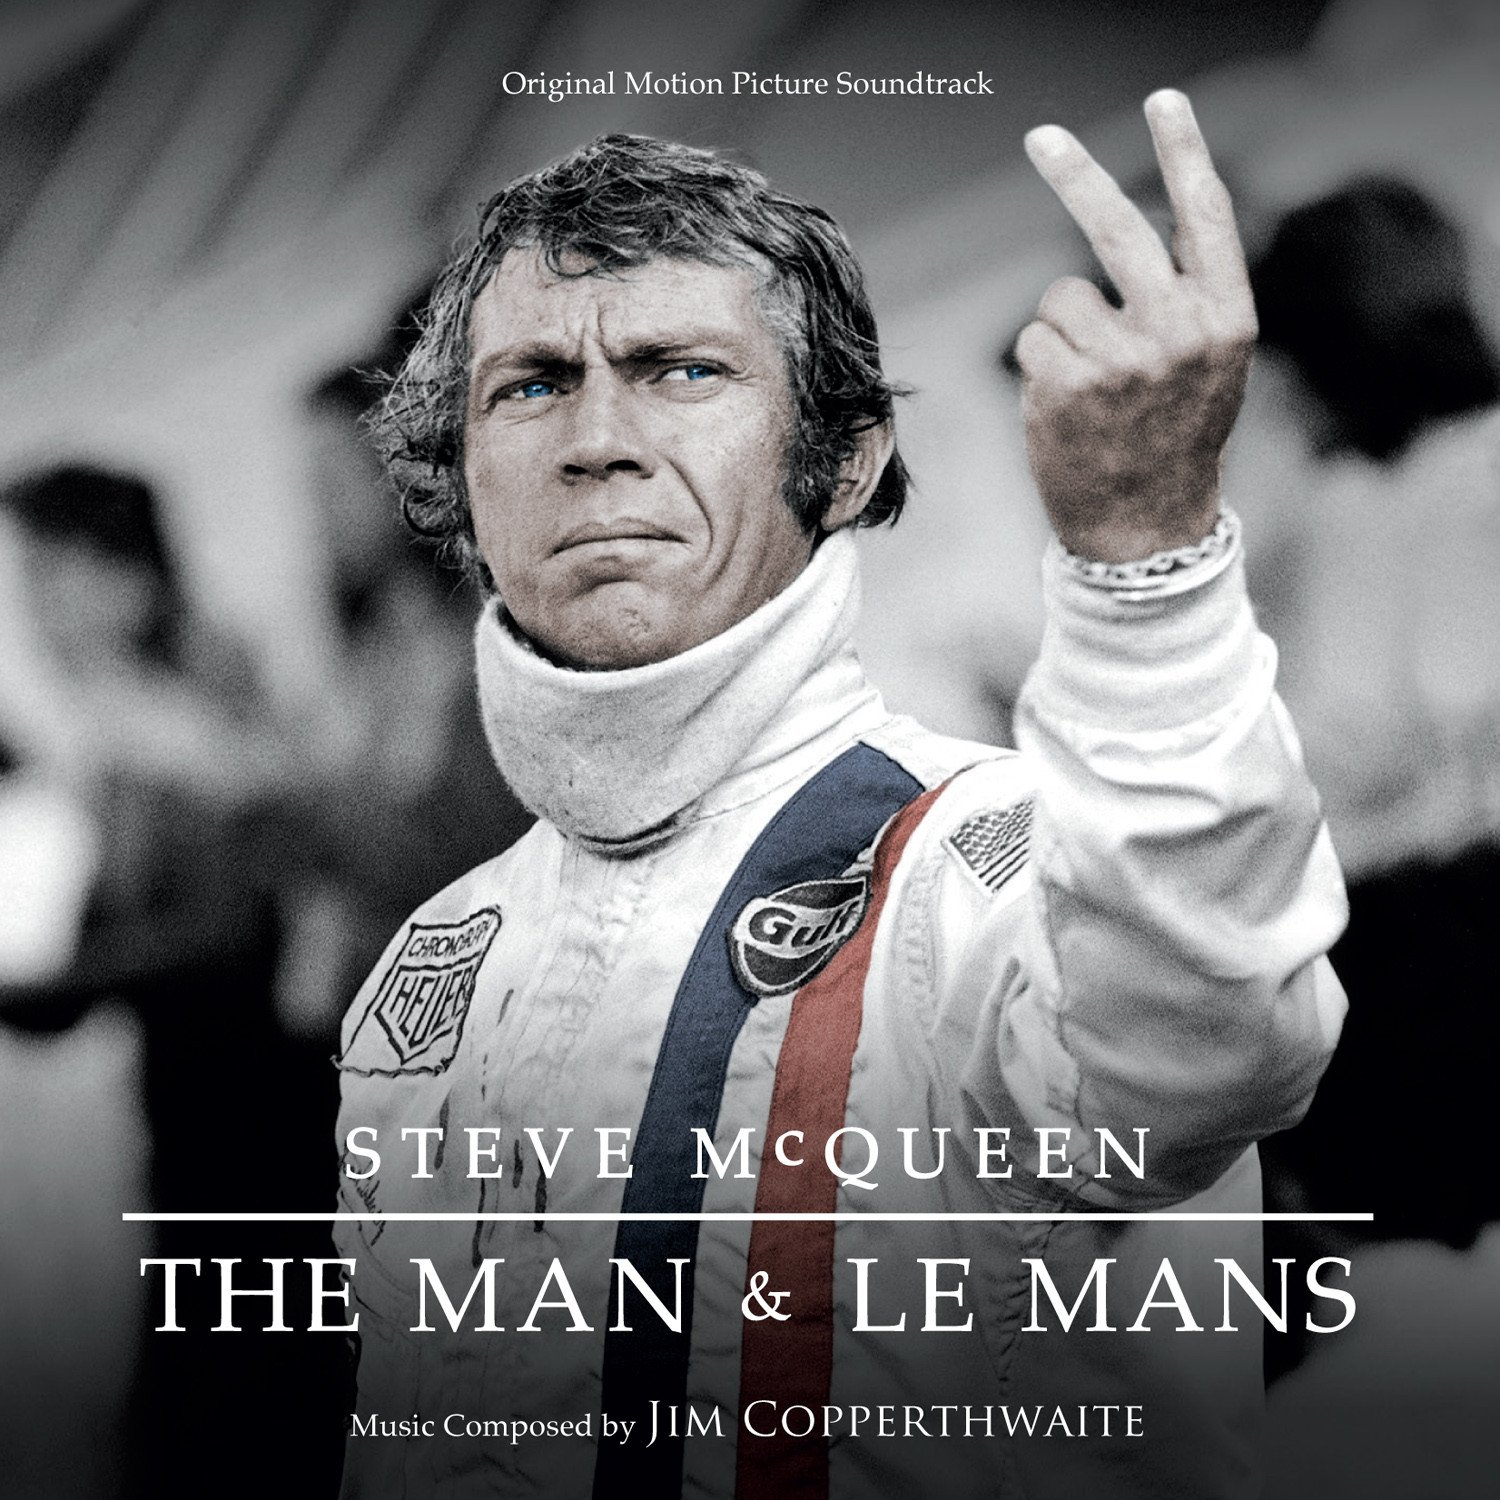 3020673858_McQueen_The_Man_Le_Mans_Cover_2048x2048